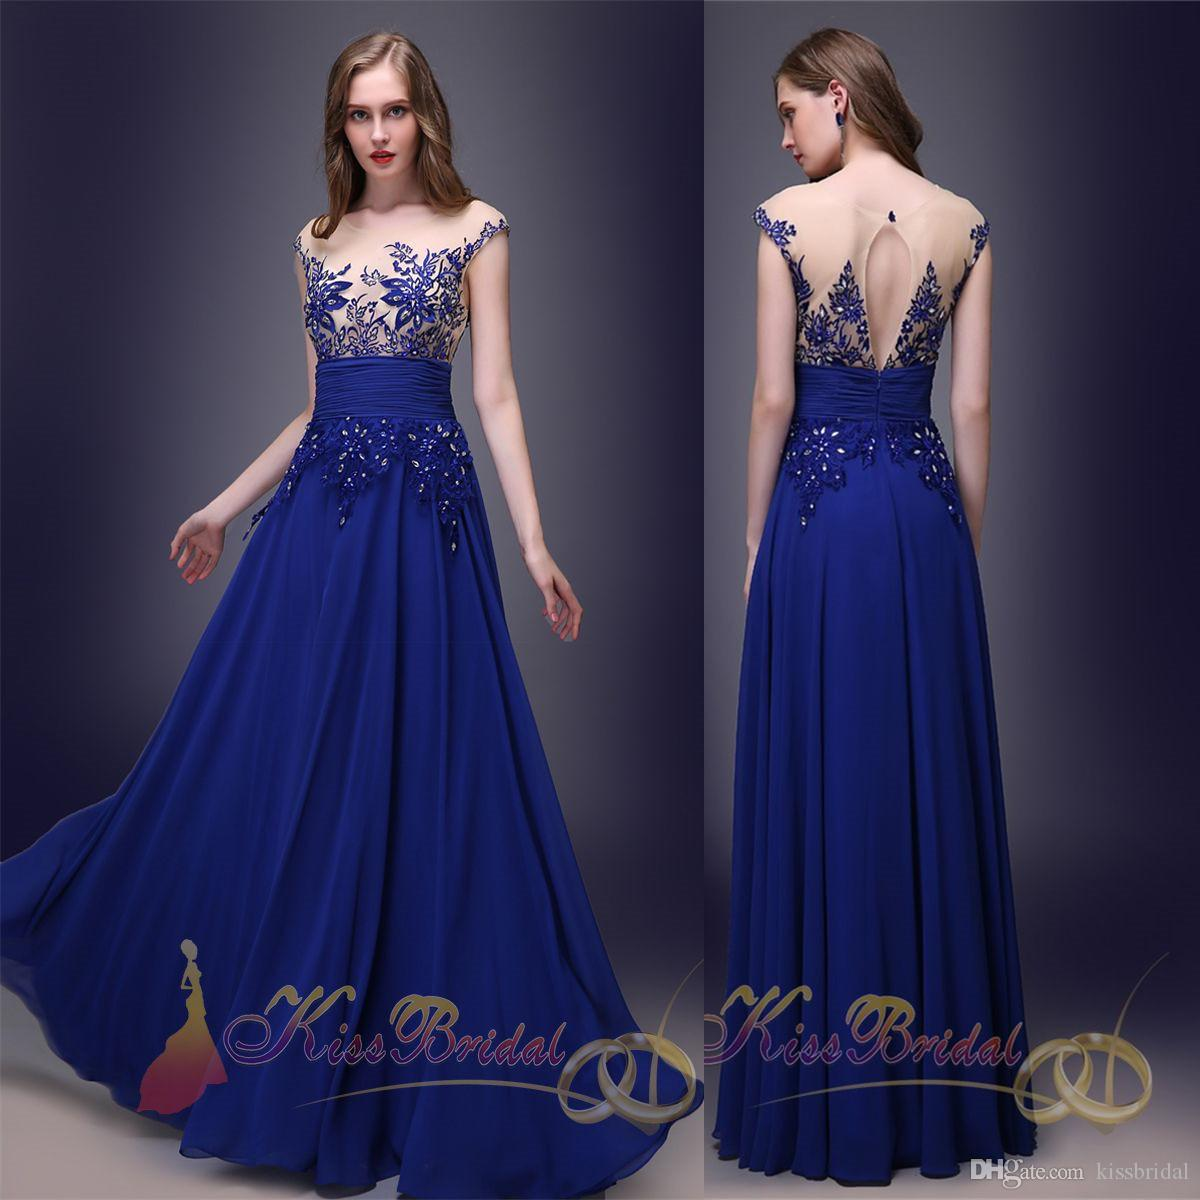 2014 Hot Sales Designer Evening Dresses Lace Appliqued Sheer Jewel ...